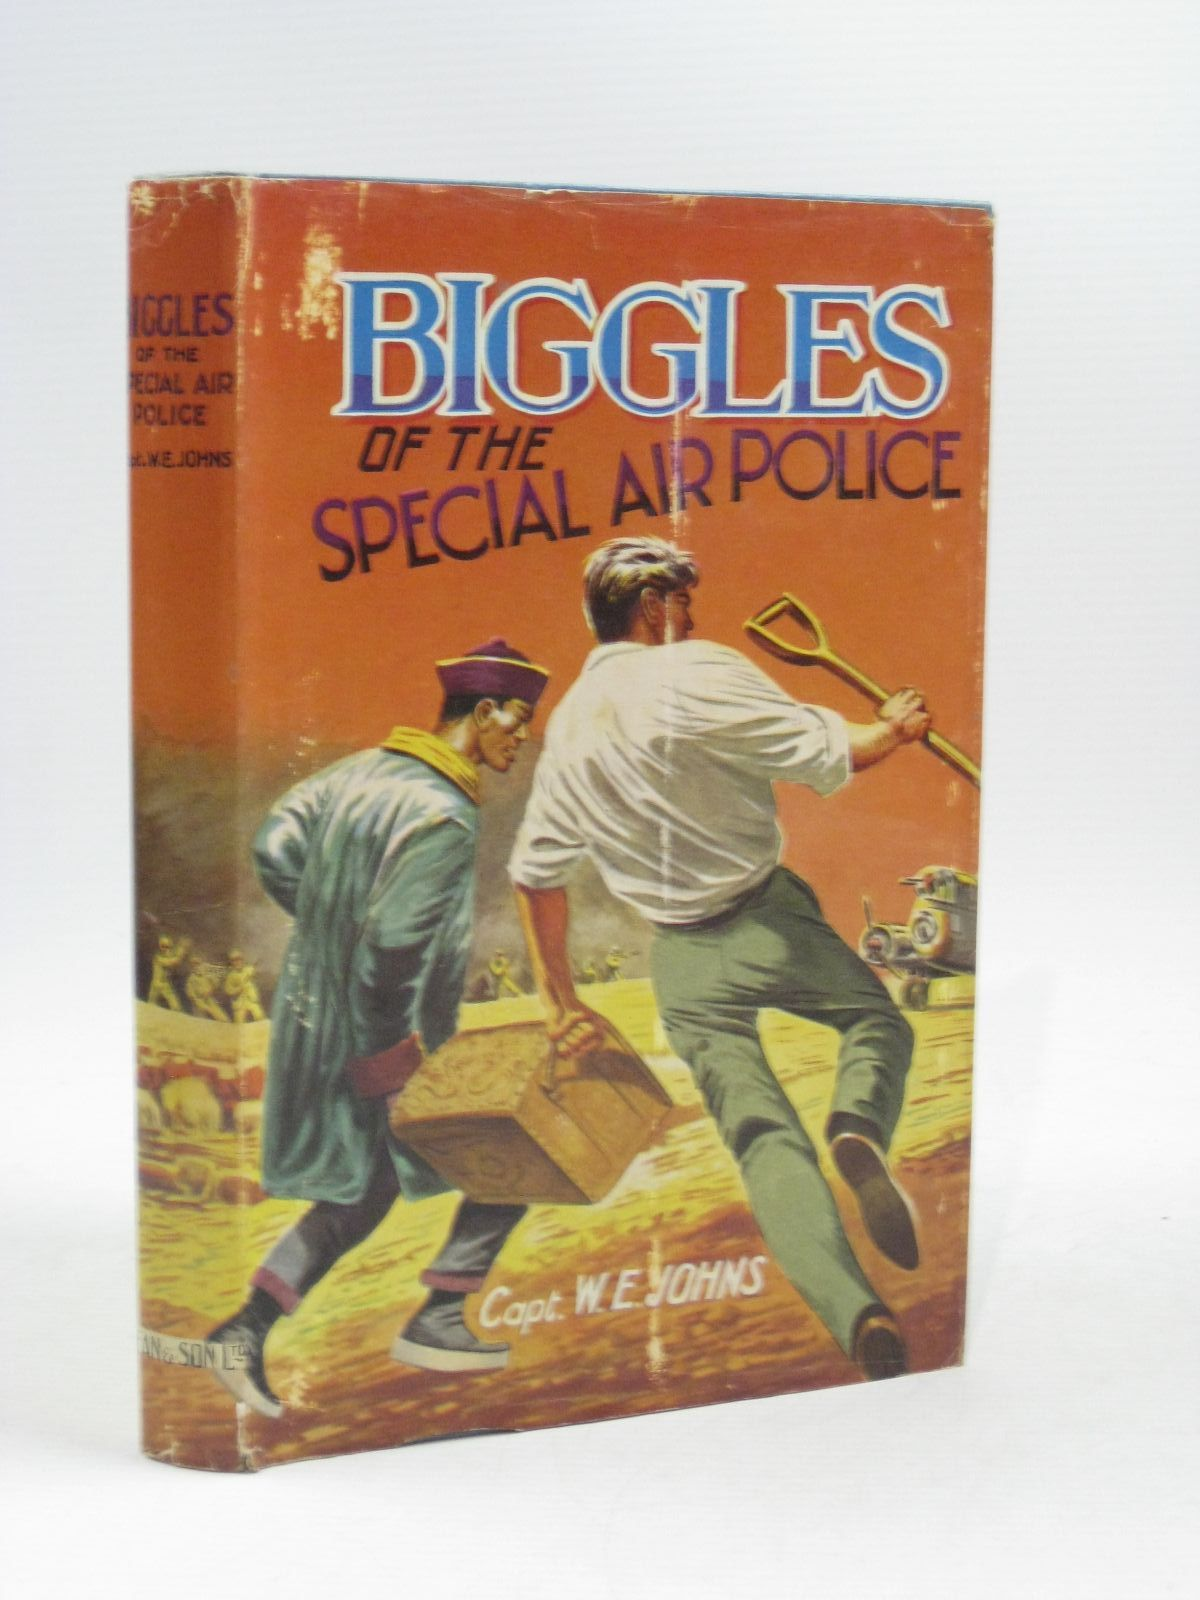 Photo of BIGGLES OF THE SPECIAL AIR POLICE written by Johns, W.E. published by Dean & Son Ltd. (STOCK CODE: 1504752)  for sale by Stella & Rose's Books